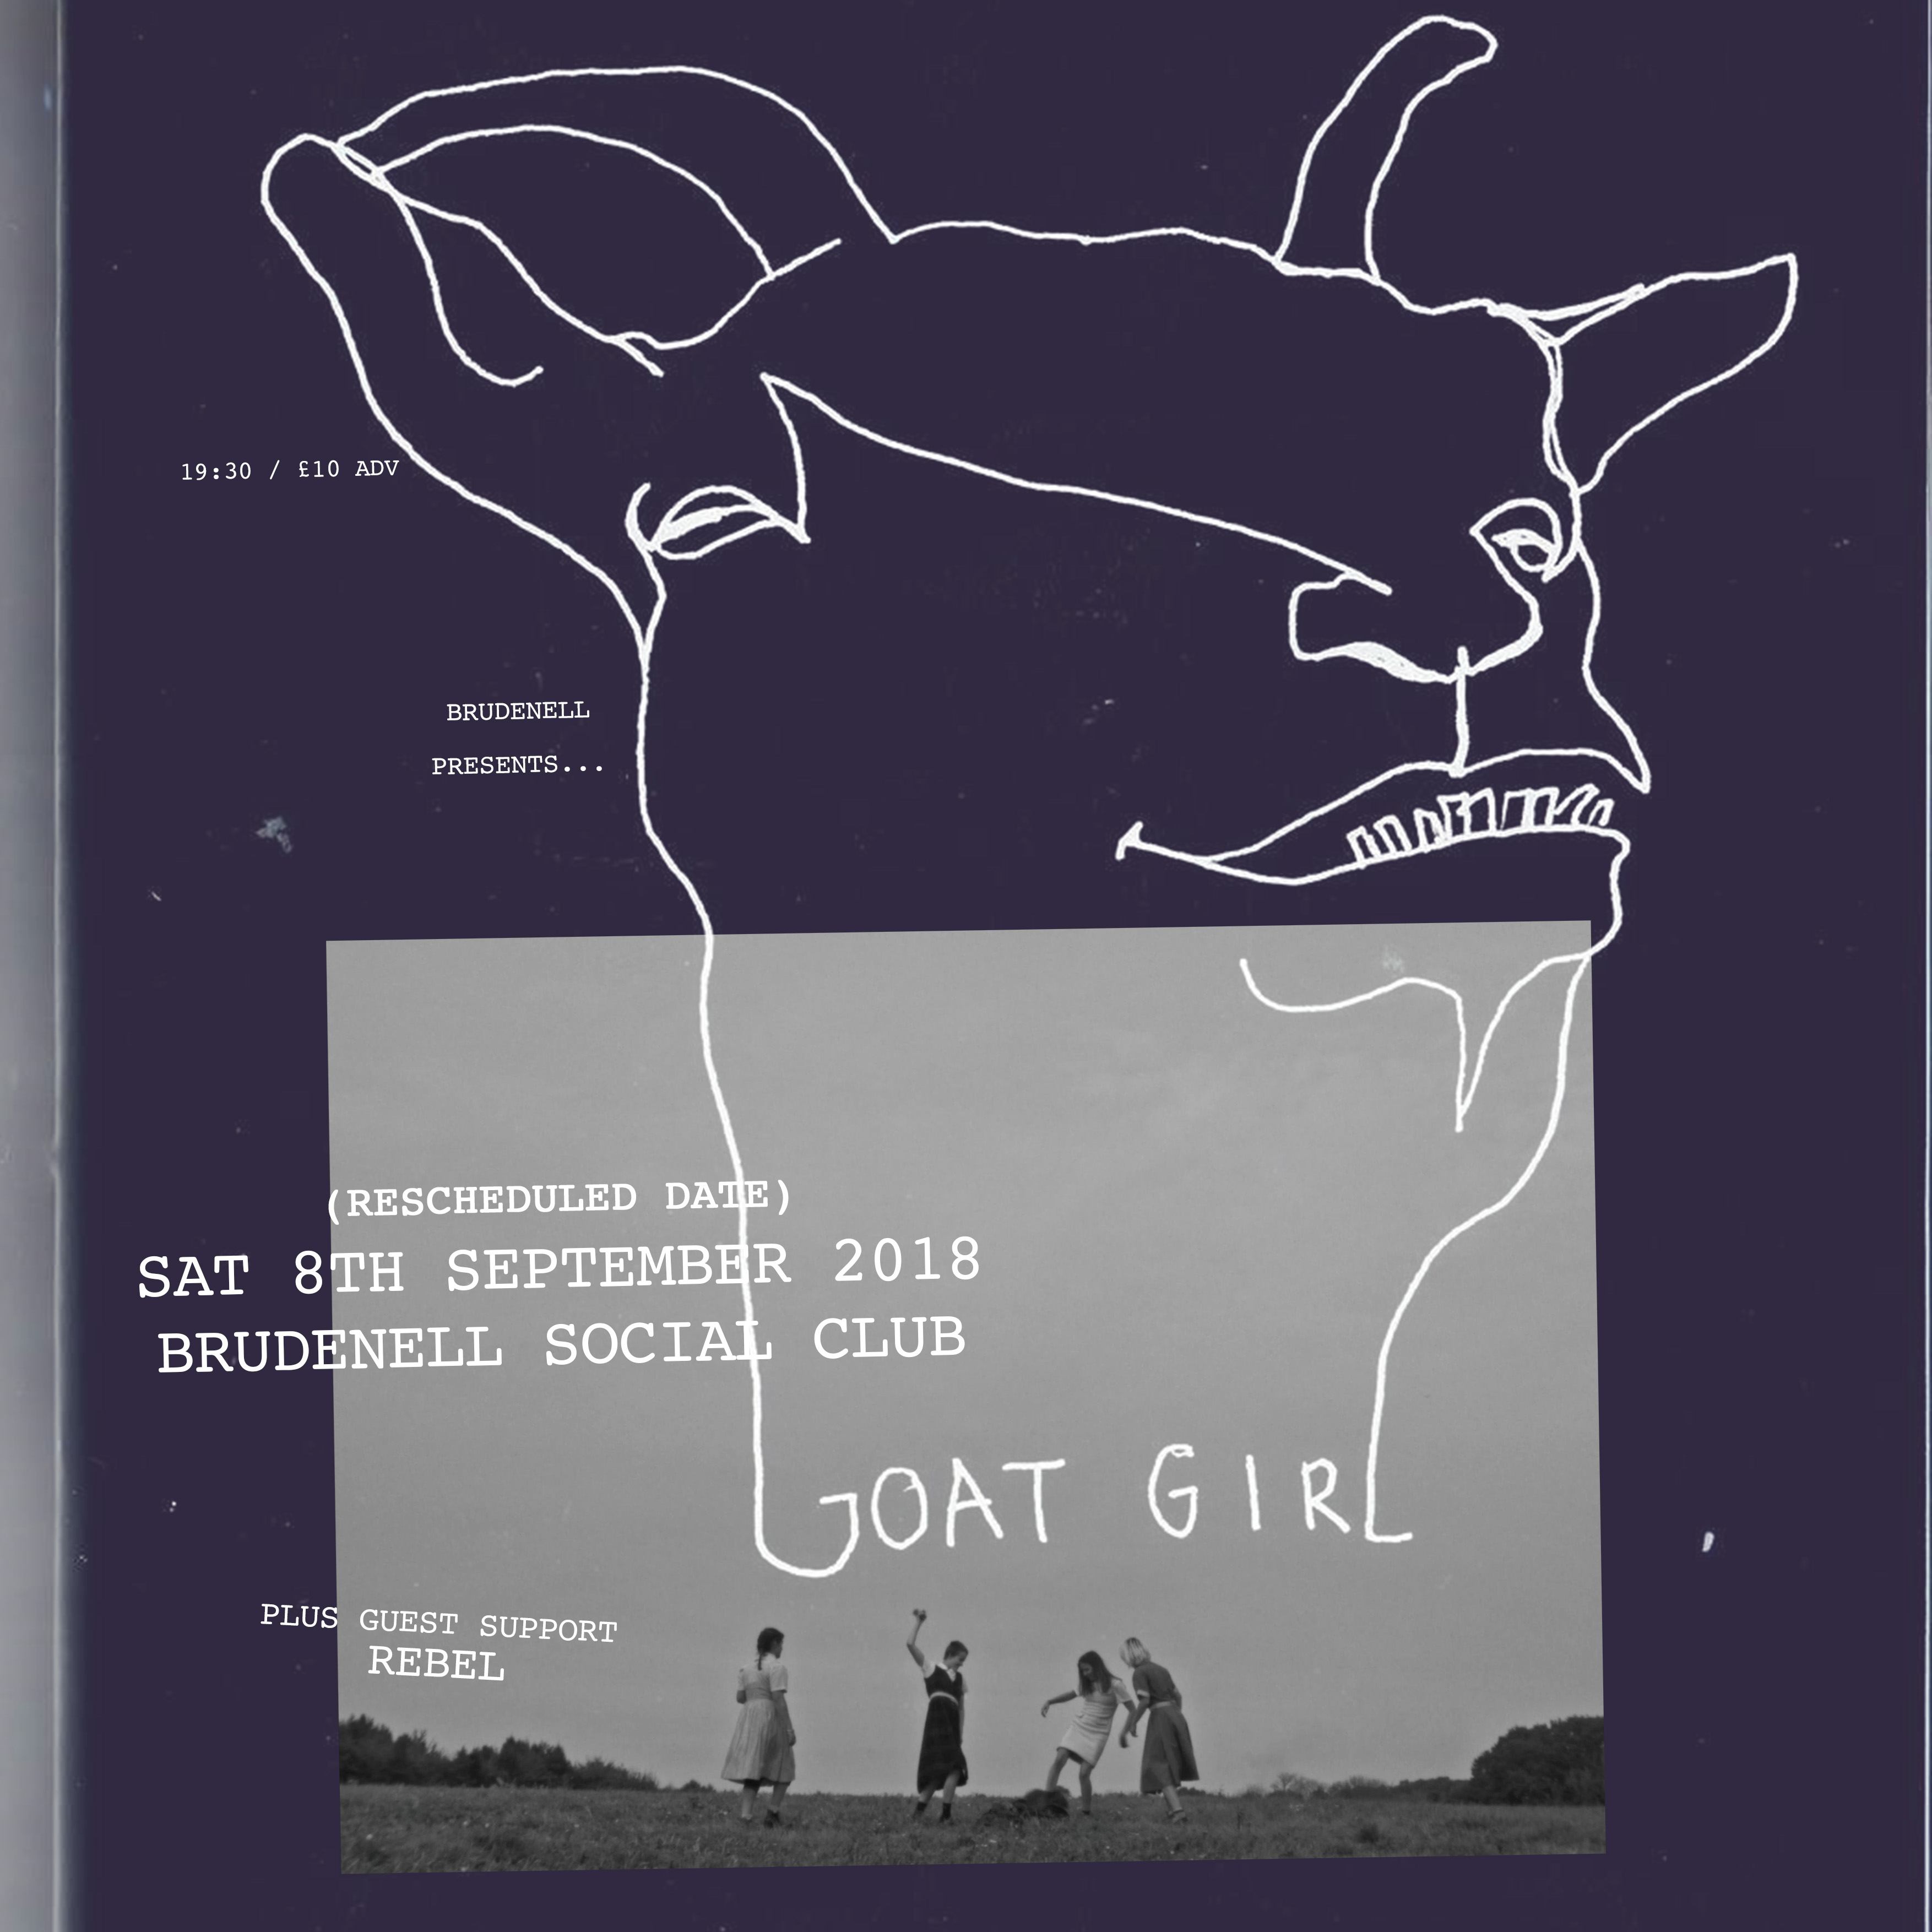 Goat Girl Note Rescheduled Date All Previous Tickets Remain